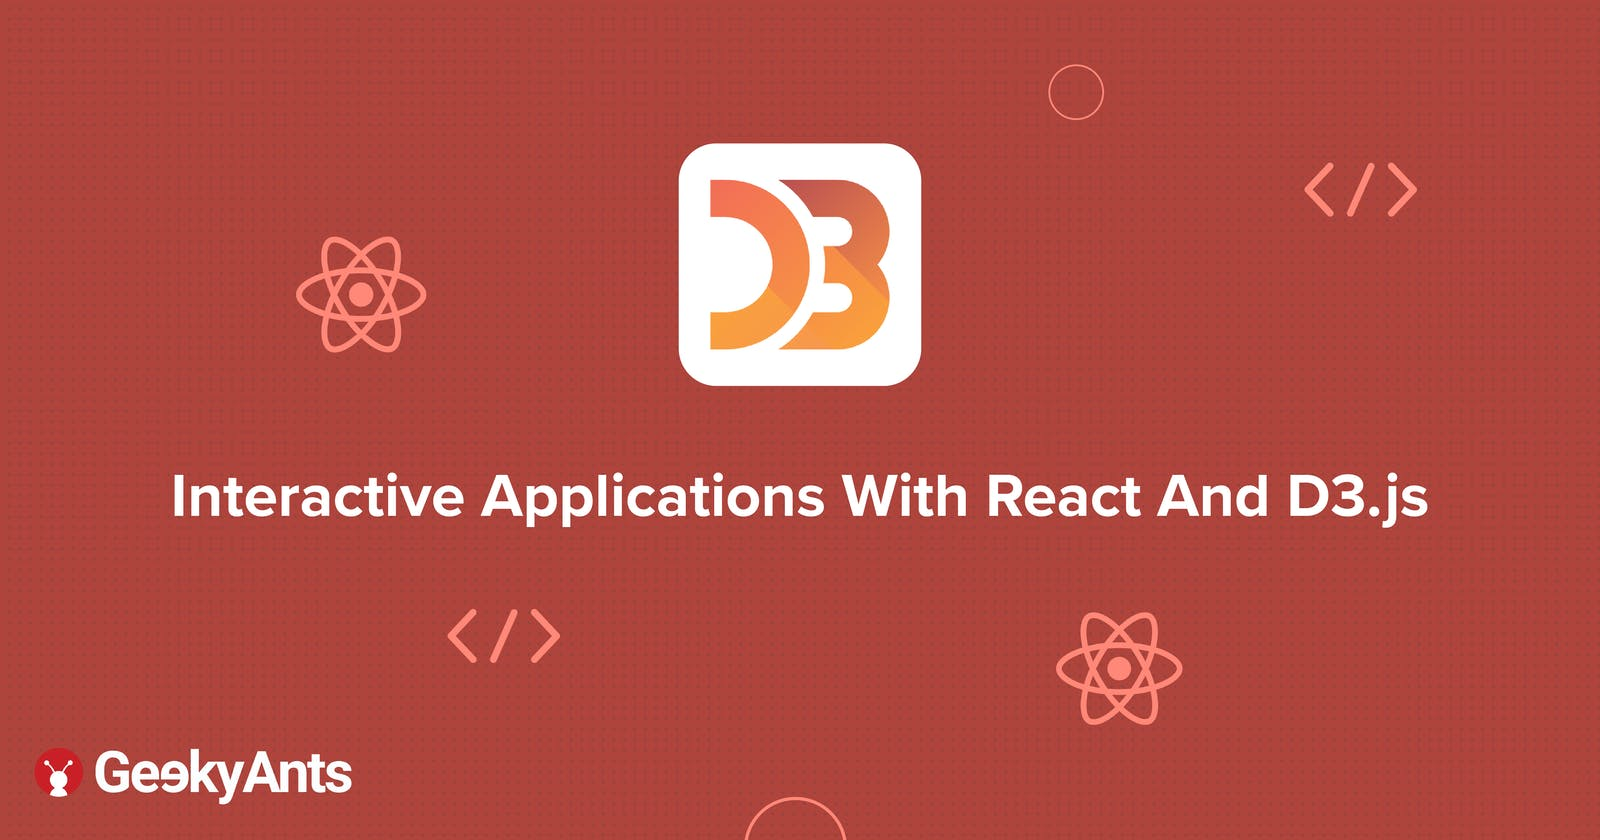 Interactive Applications With React And D3.js